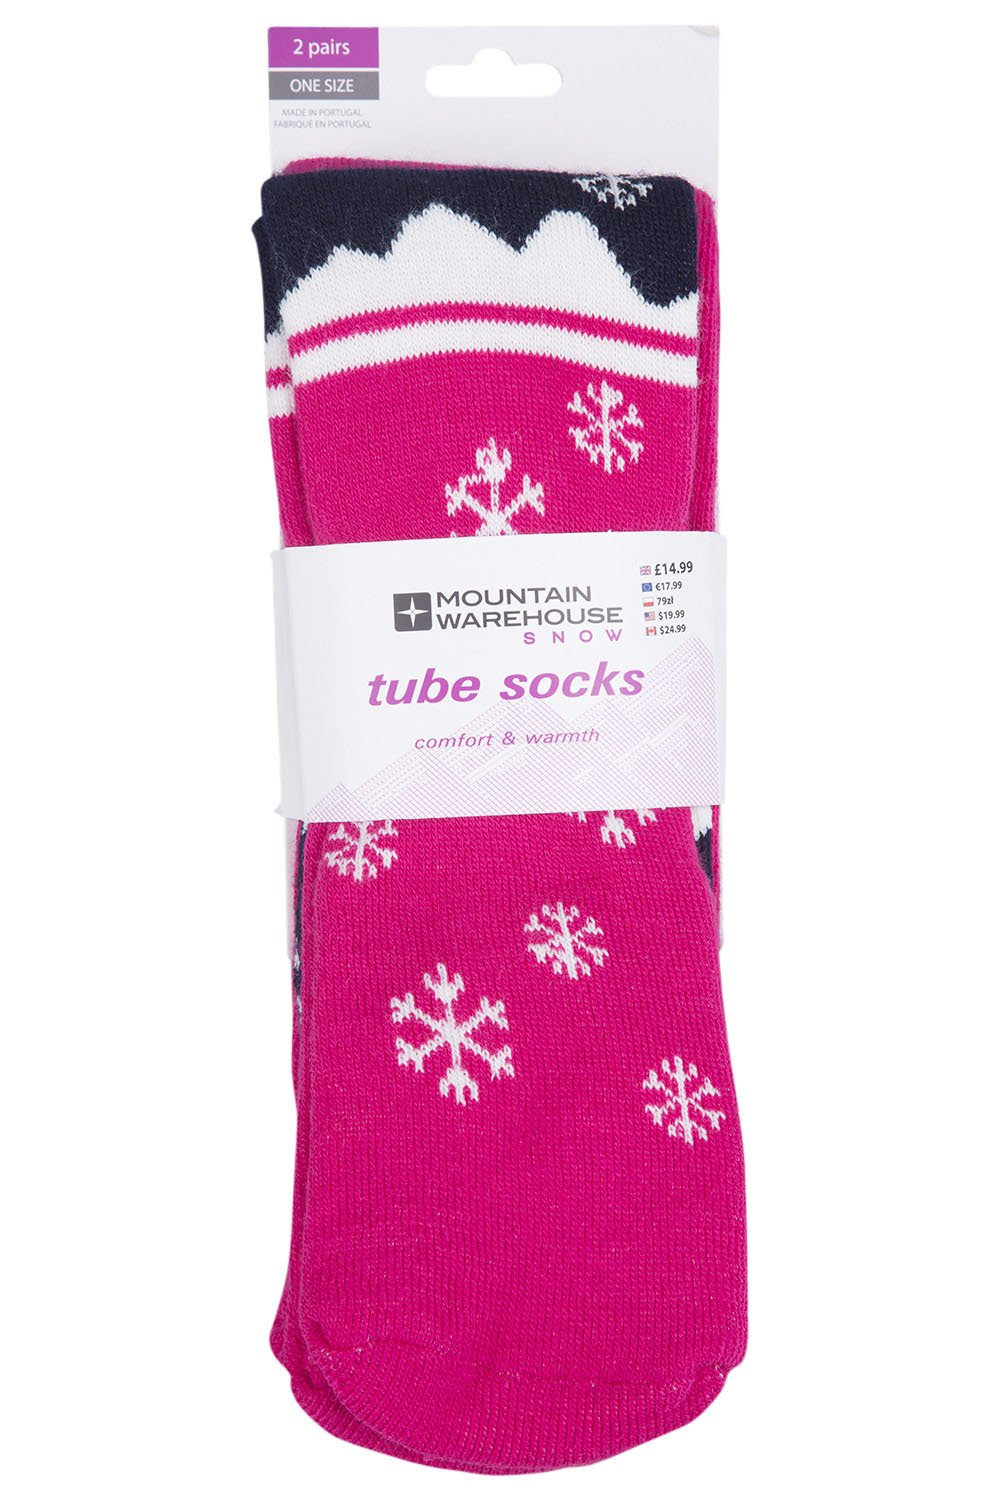 Mountain Warehouse Patterned Ski Tubes - 2 Pack Long Socks Dark Purple 023396021001